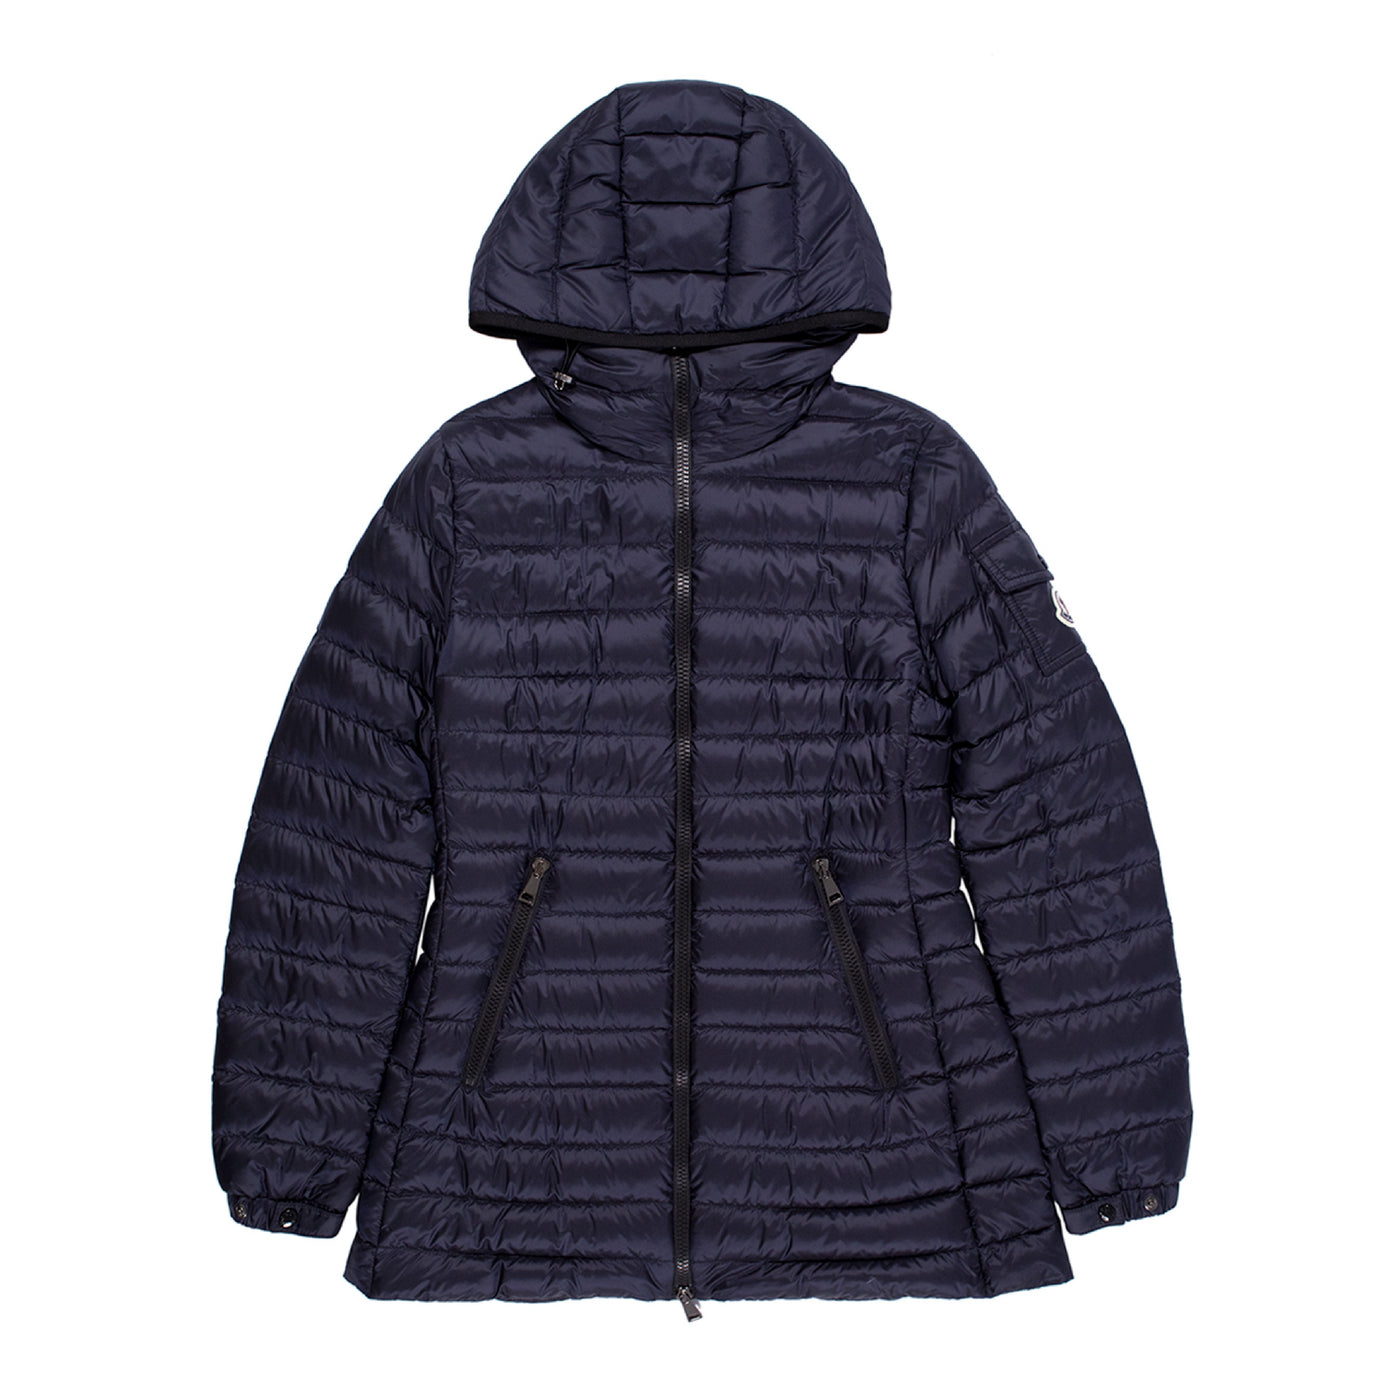 Load image into Gallery viewer, MONCLER HOODED PUFFER COAT NAVY